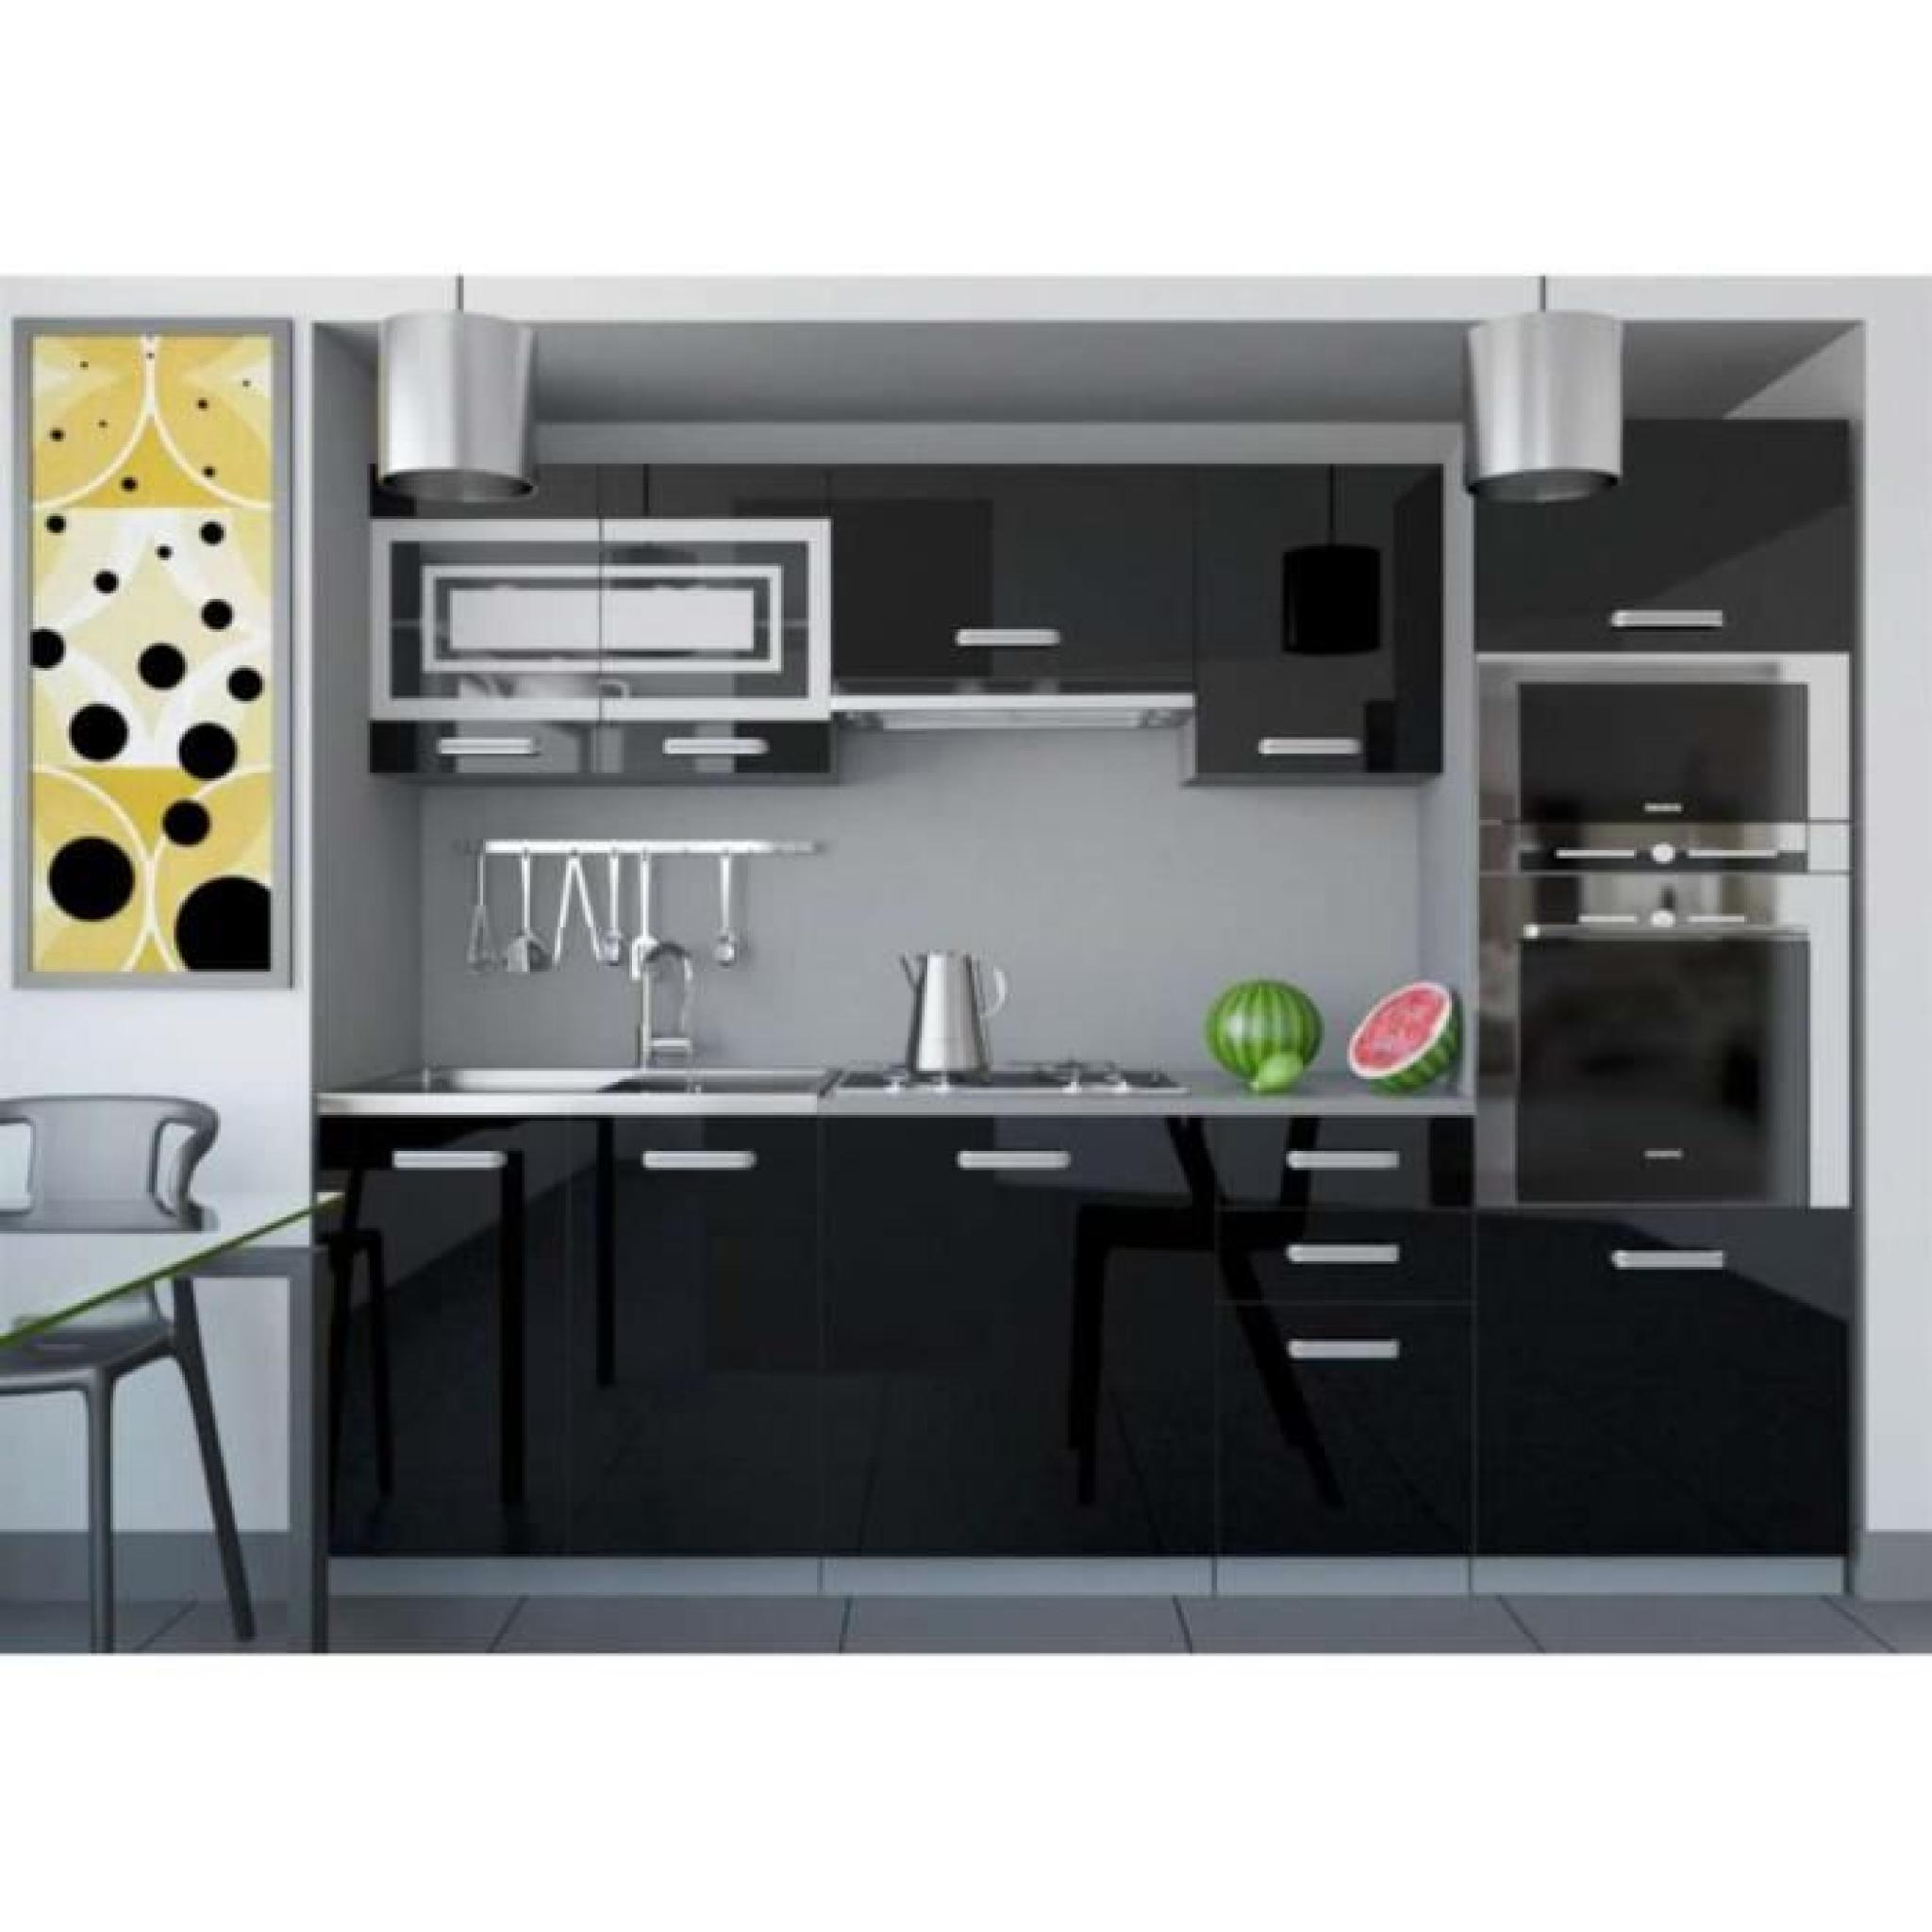 acheter une cuisine quipe pas cher achat cuisine pas cher element bas de cuisine pas cher with. Black Bedroom Furniture Sets. Home Design Ideas